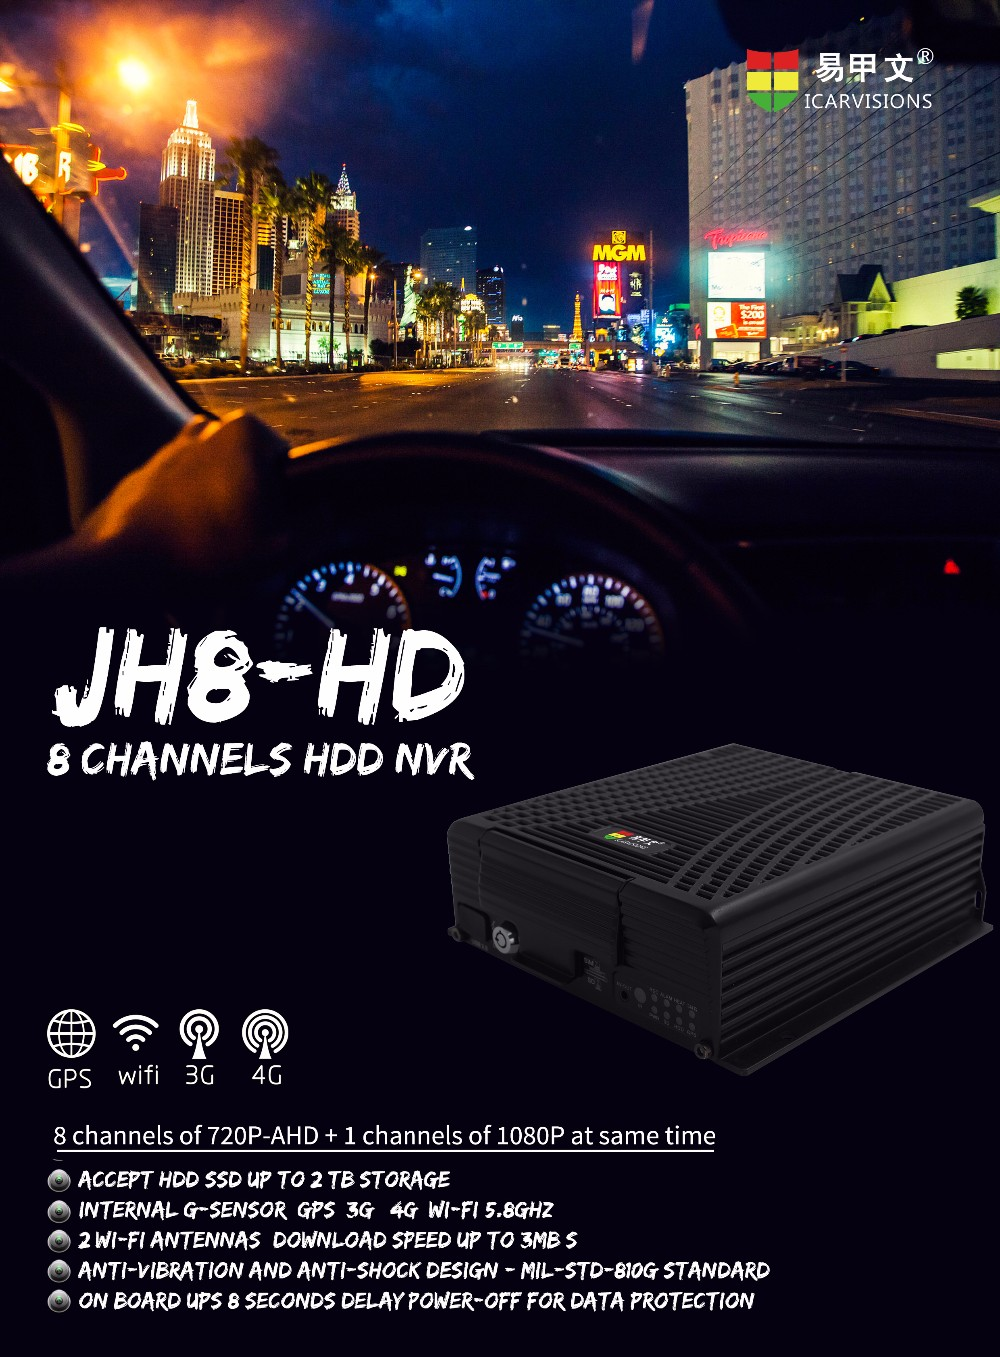 1080p full hd vehicle blackbox dvr user manual